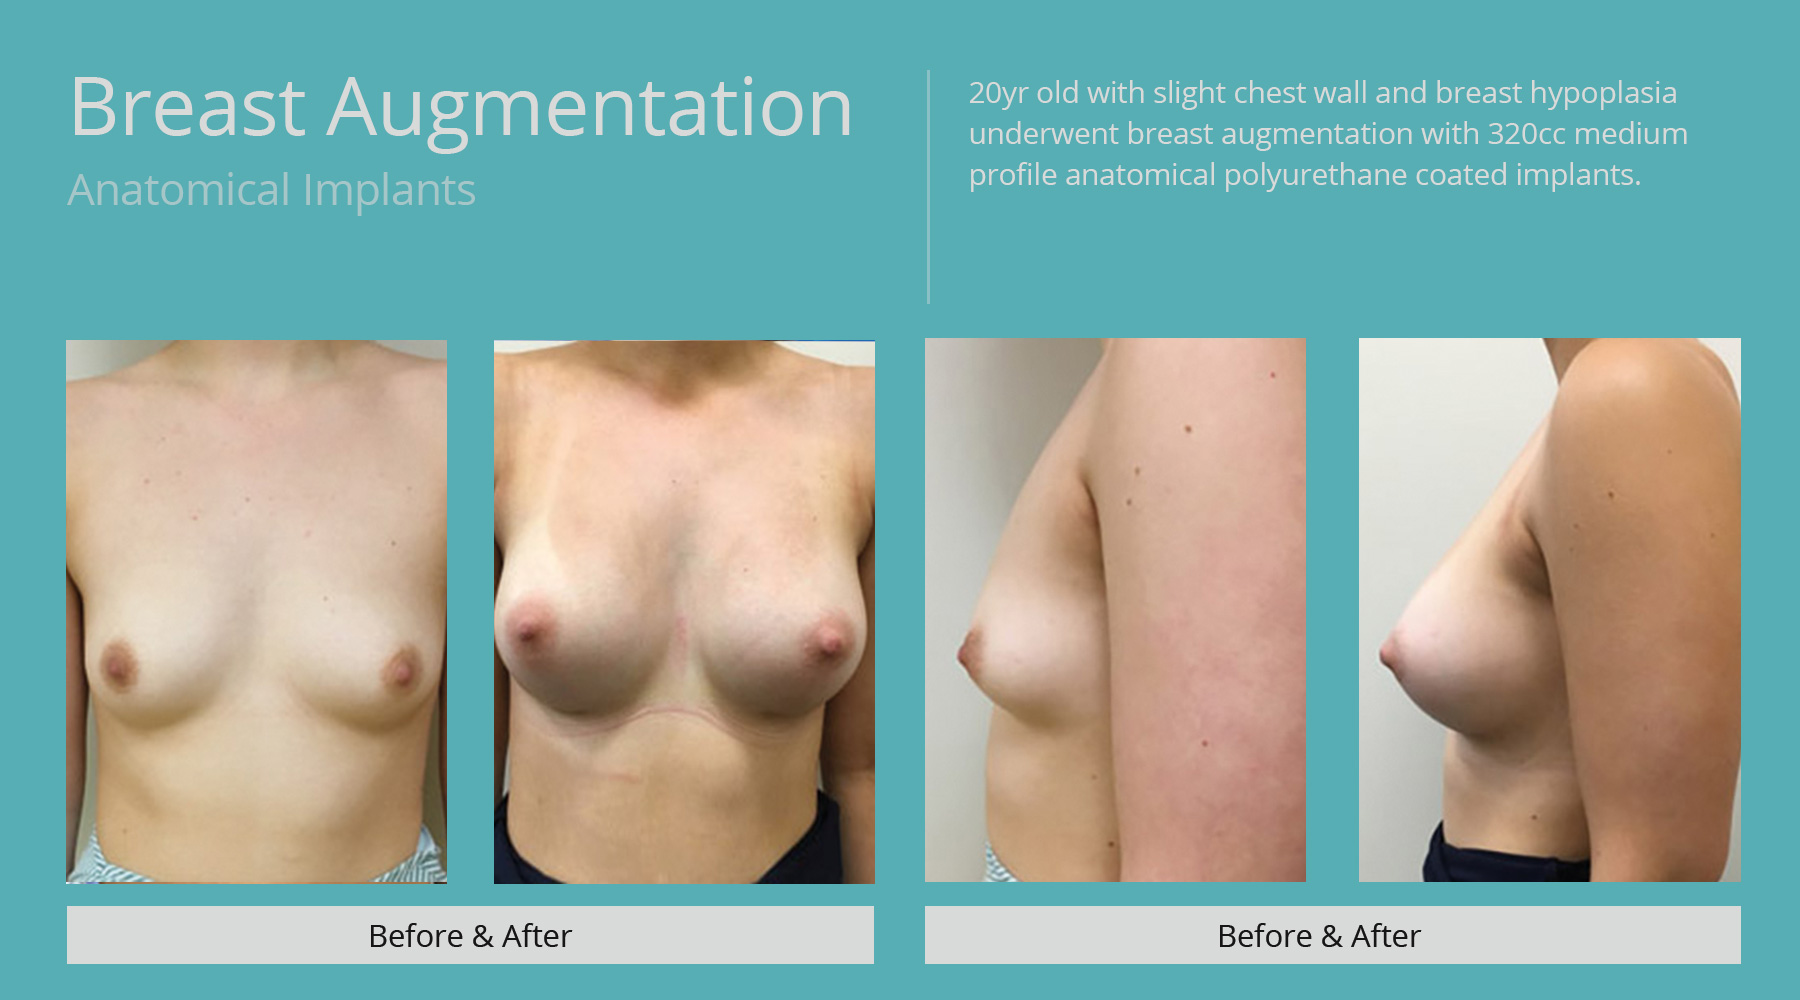 Breast-Augmentation-anatomical-20